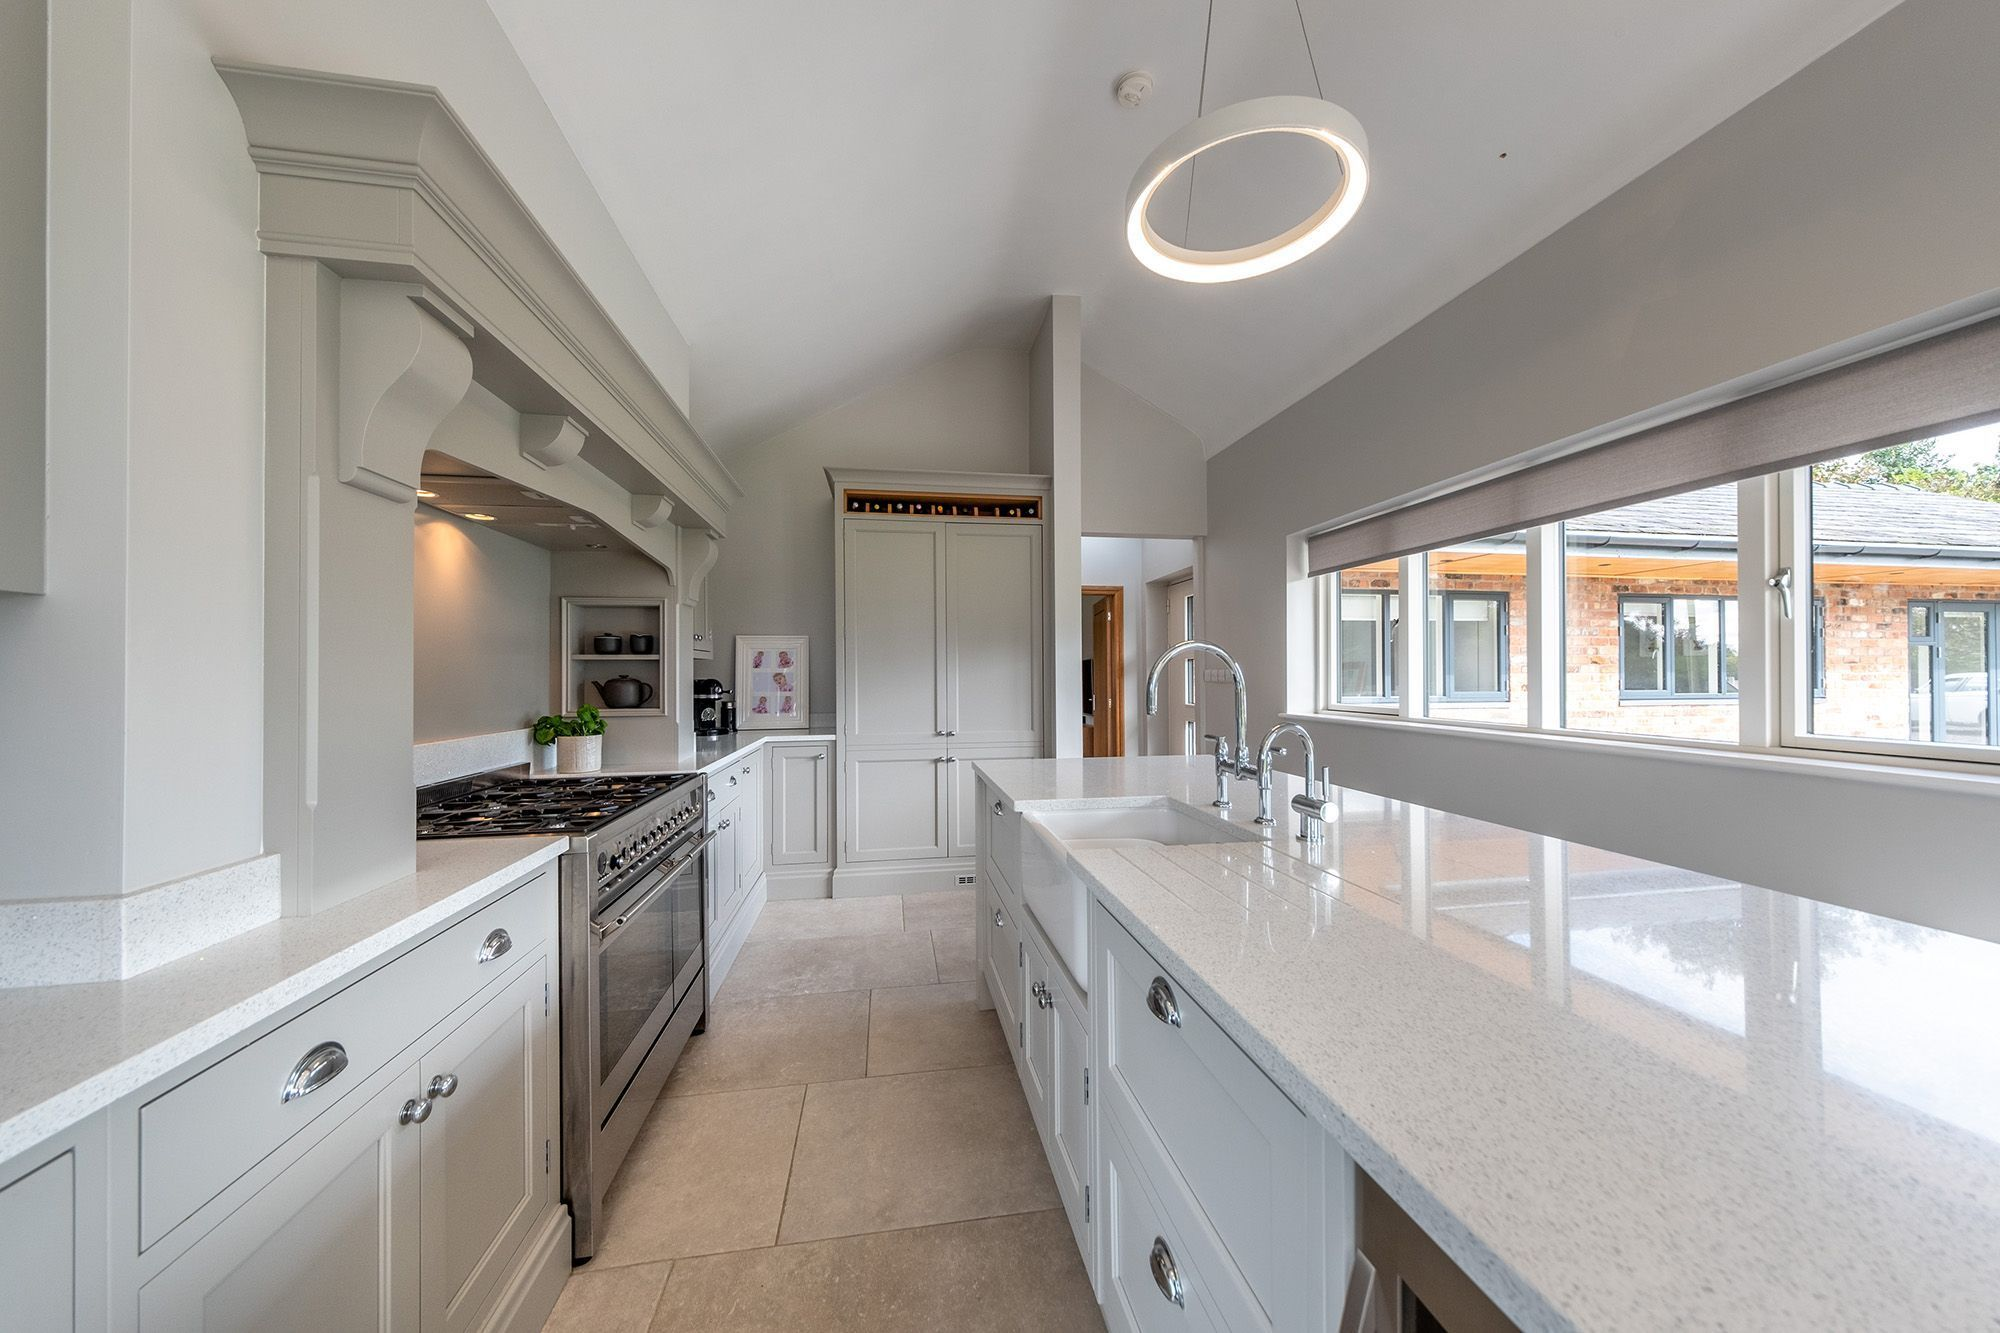 Modern kitchen with vaulted ceiling large island and range cooker #vaultedceilingdecor Modern kitchen with vaulted ceiling large island and range cooker #vaultedceilingdecor Modern kitchen with vaulted ceiling large island and range cooker #vaultedceilingdecor Modern kitchen with vaulted ceiling large island and range cooker #vaultedceilingdecor